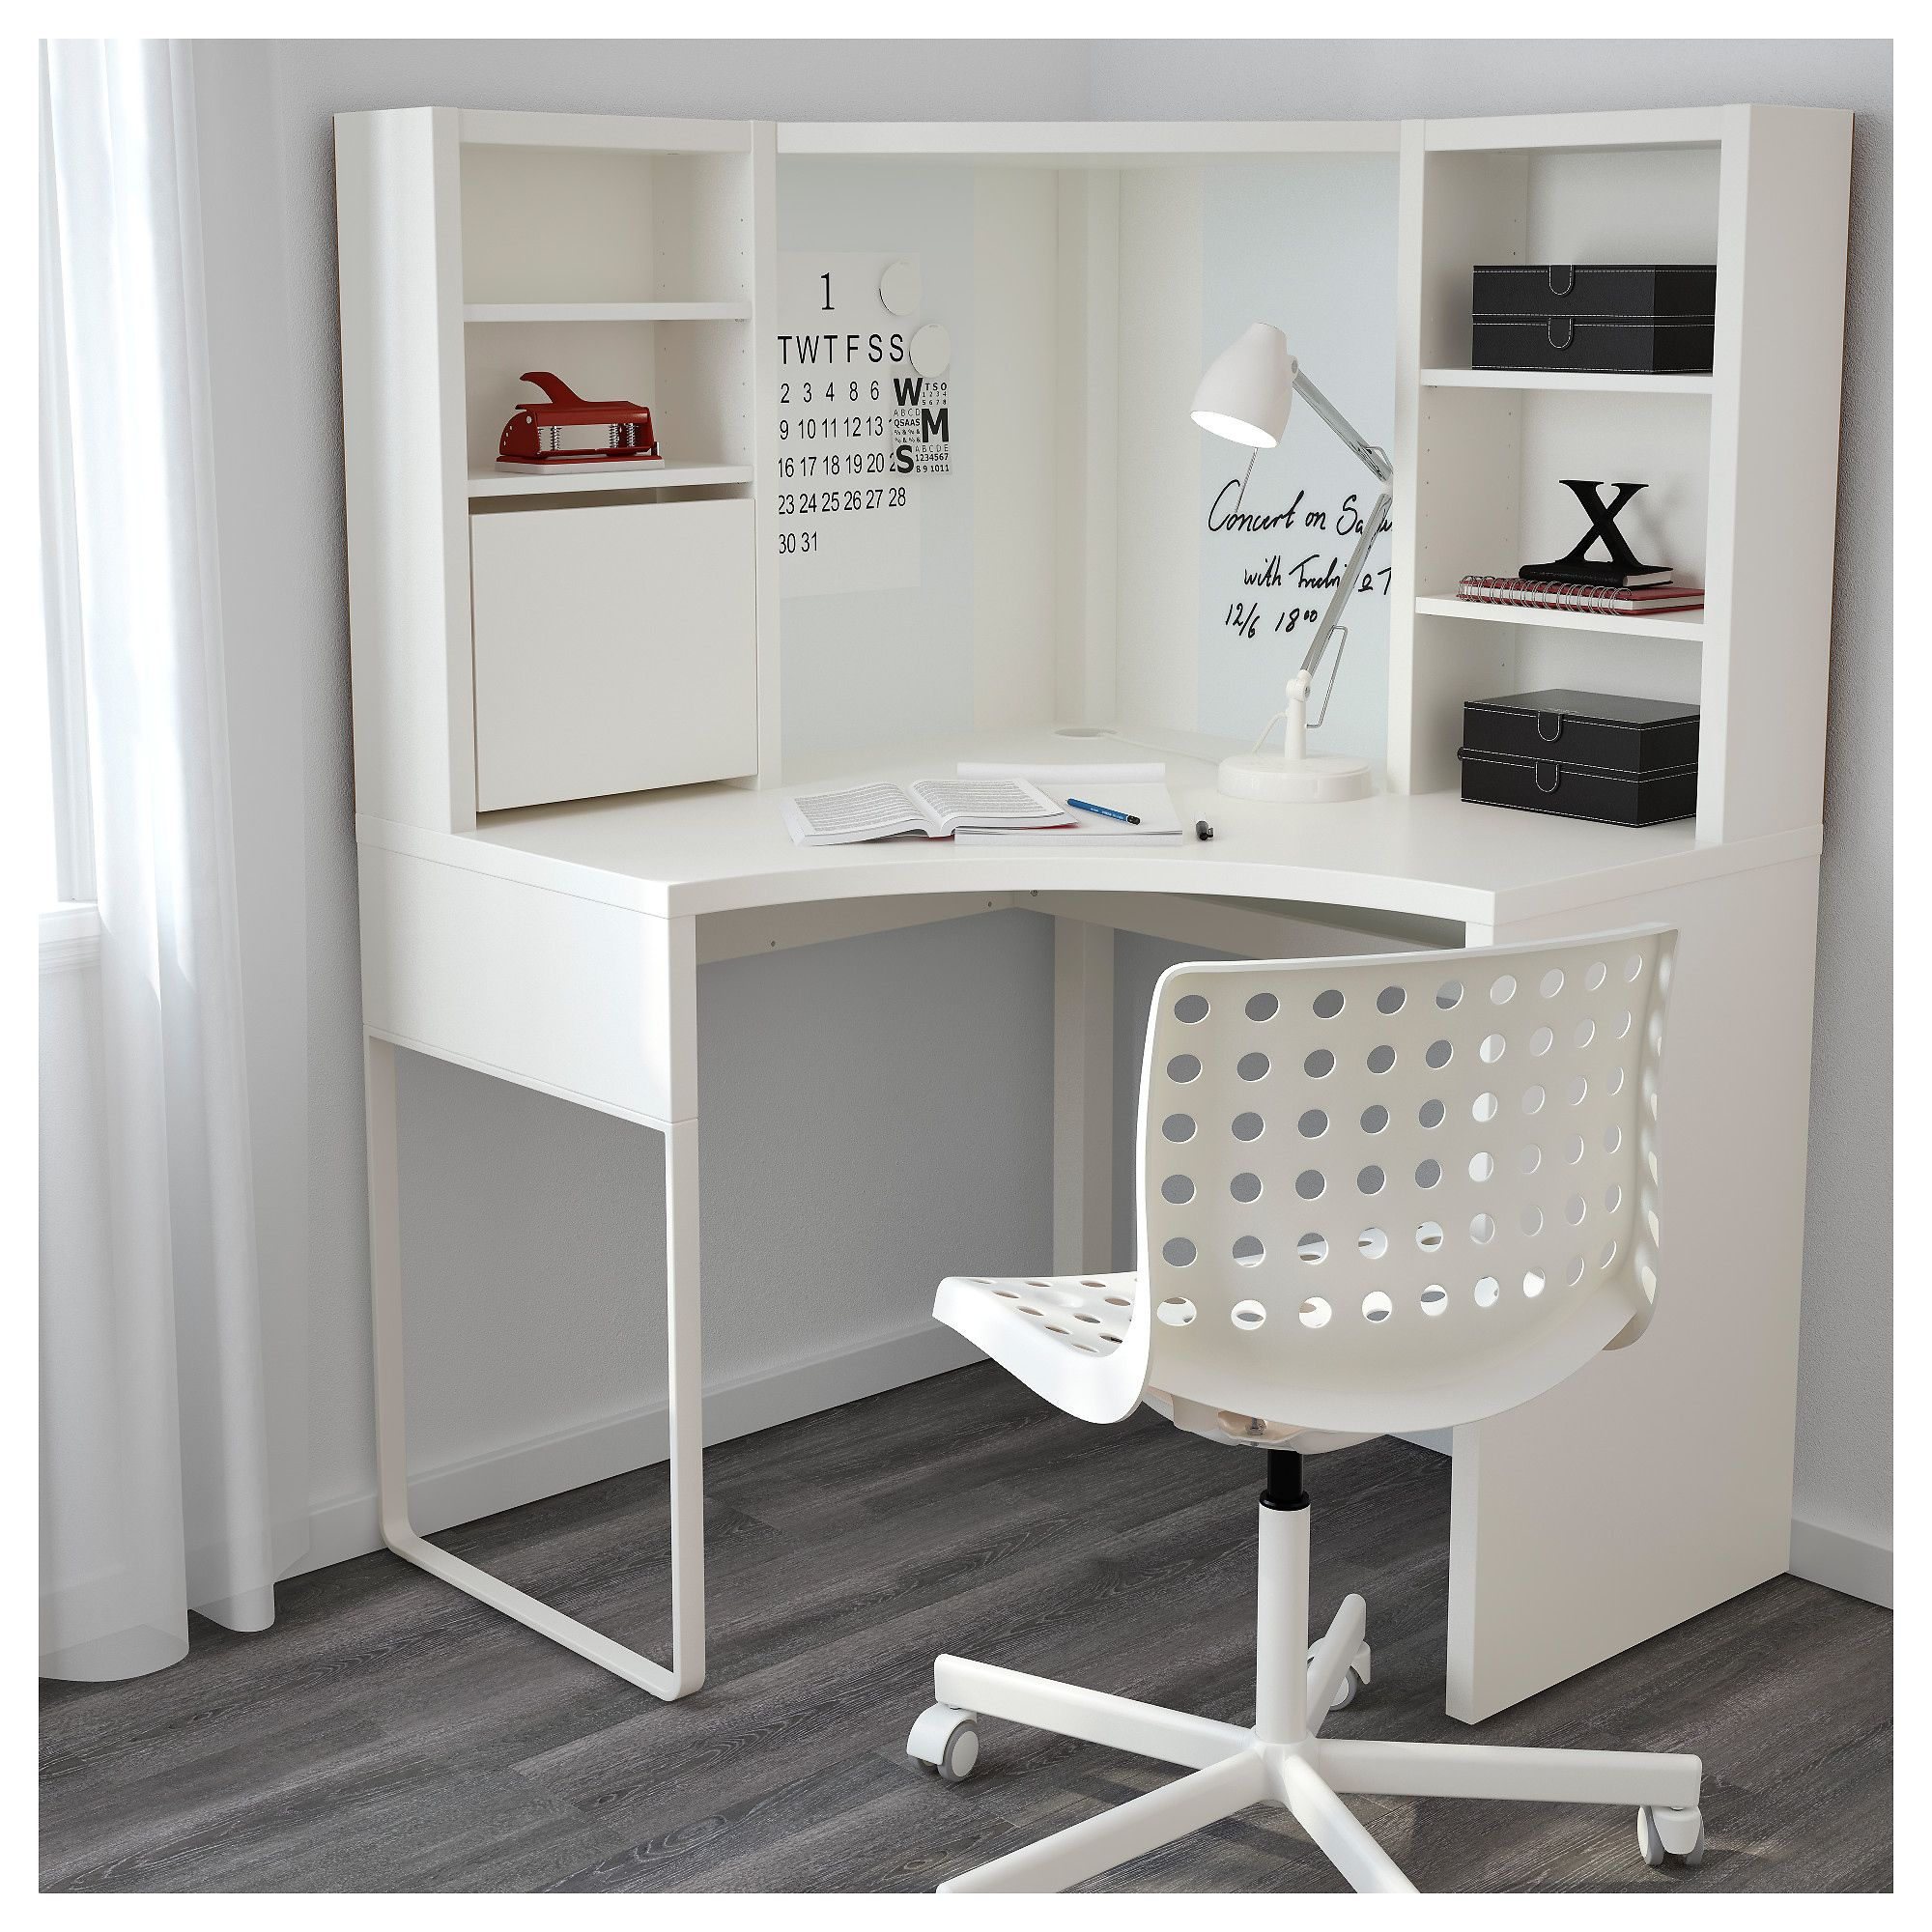 99 White Corner Writing Desk Office Furniture For Home Check More At Http Www Sewcraftyjenn Com Corner Workstation White Corner Desk Home Office Furniture